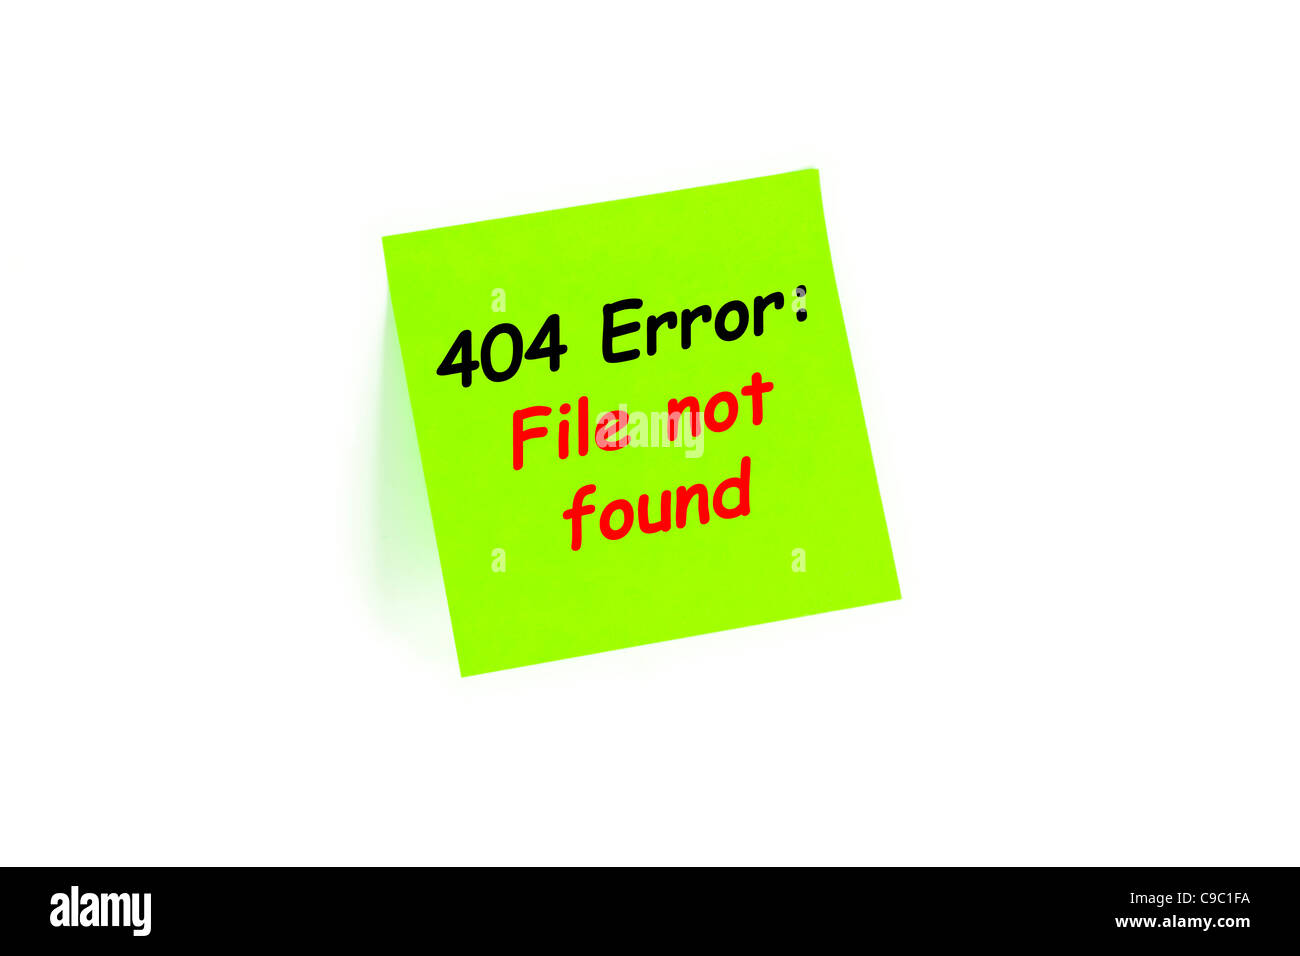 404 Error: File Not Found On A Note Isolated On White - Stock Image